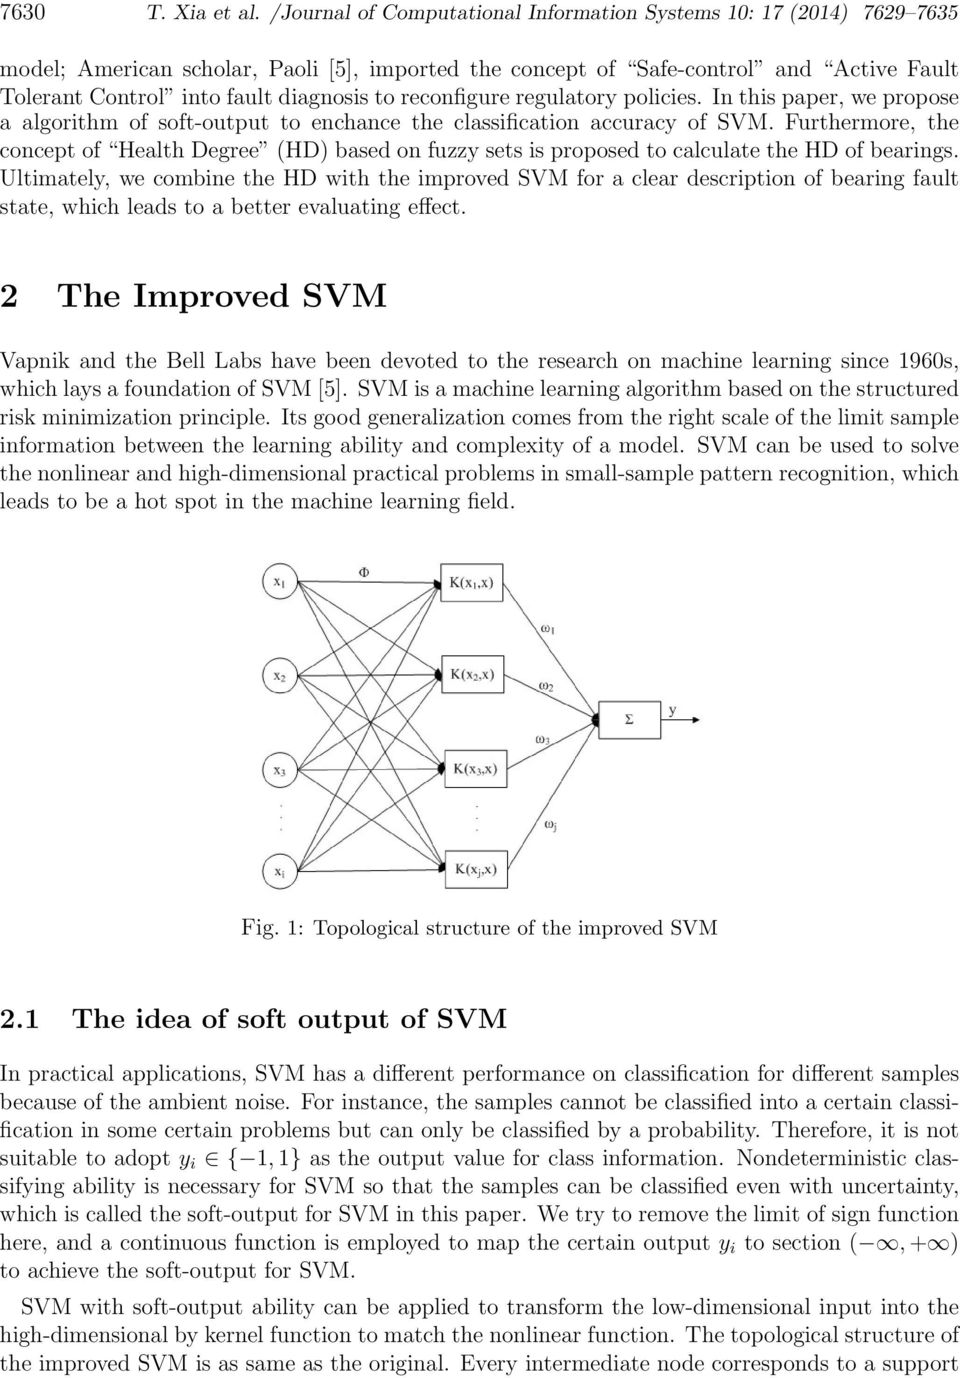 to reconfigure regulatory policies. In this paper, we propose a algorithm of soft-output to enchance the classification accuracy of SVM.